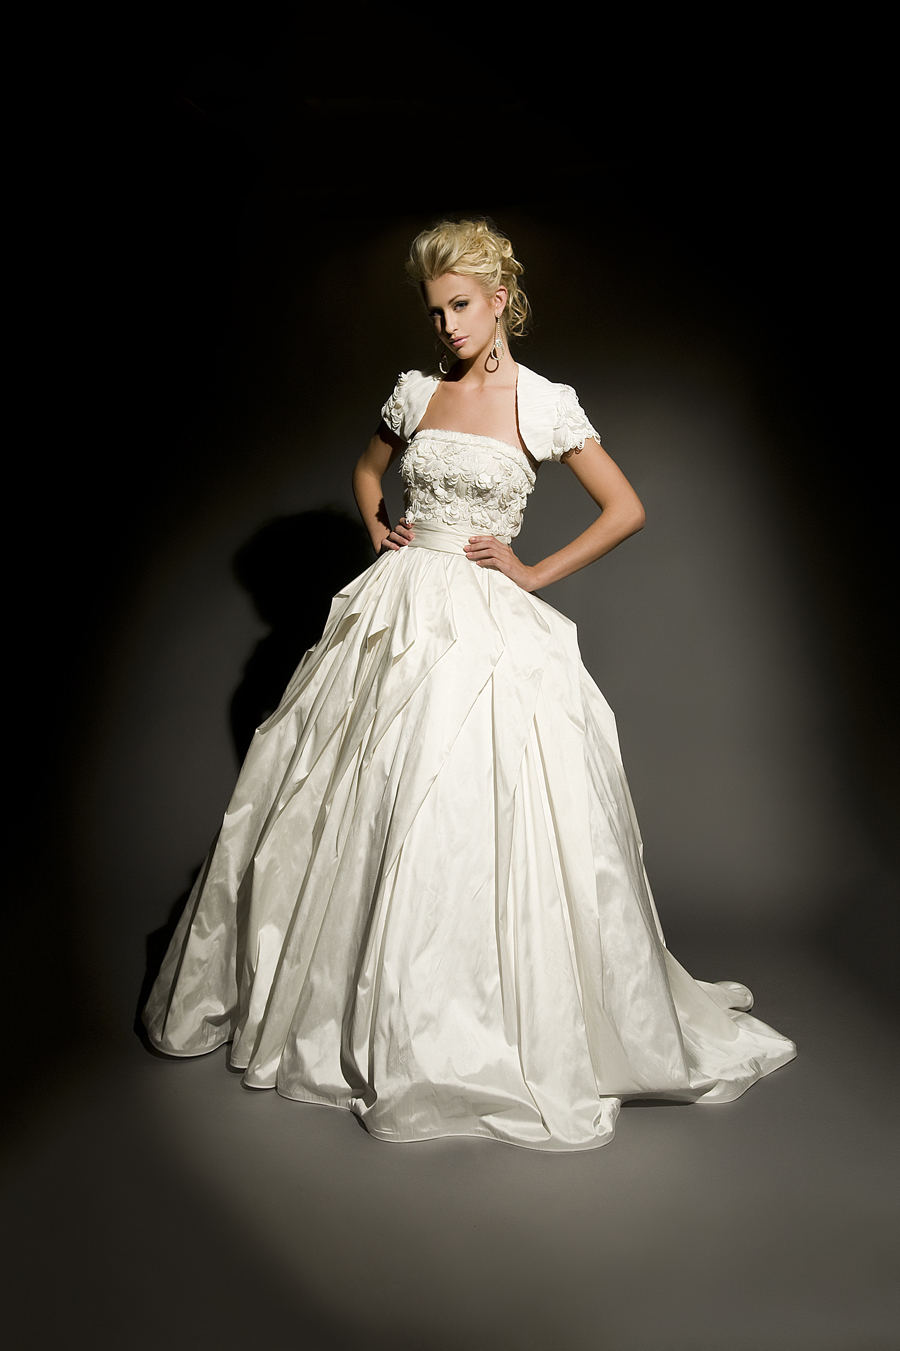 silk shantung ballgown with texturally beaded bodice